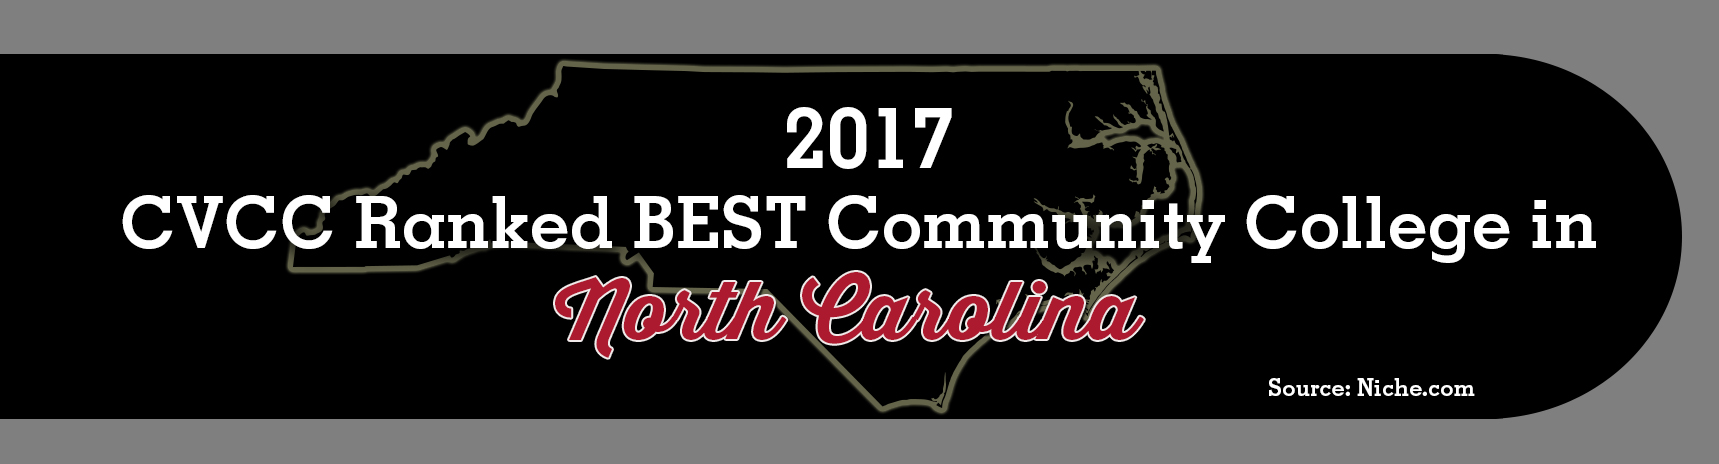 CVCC Ranked Best Community College in North Carolina for 2017